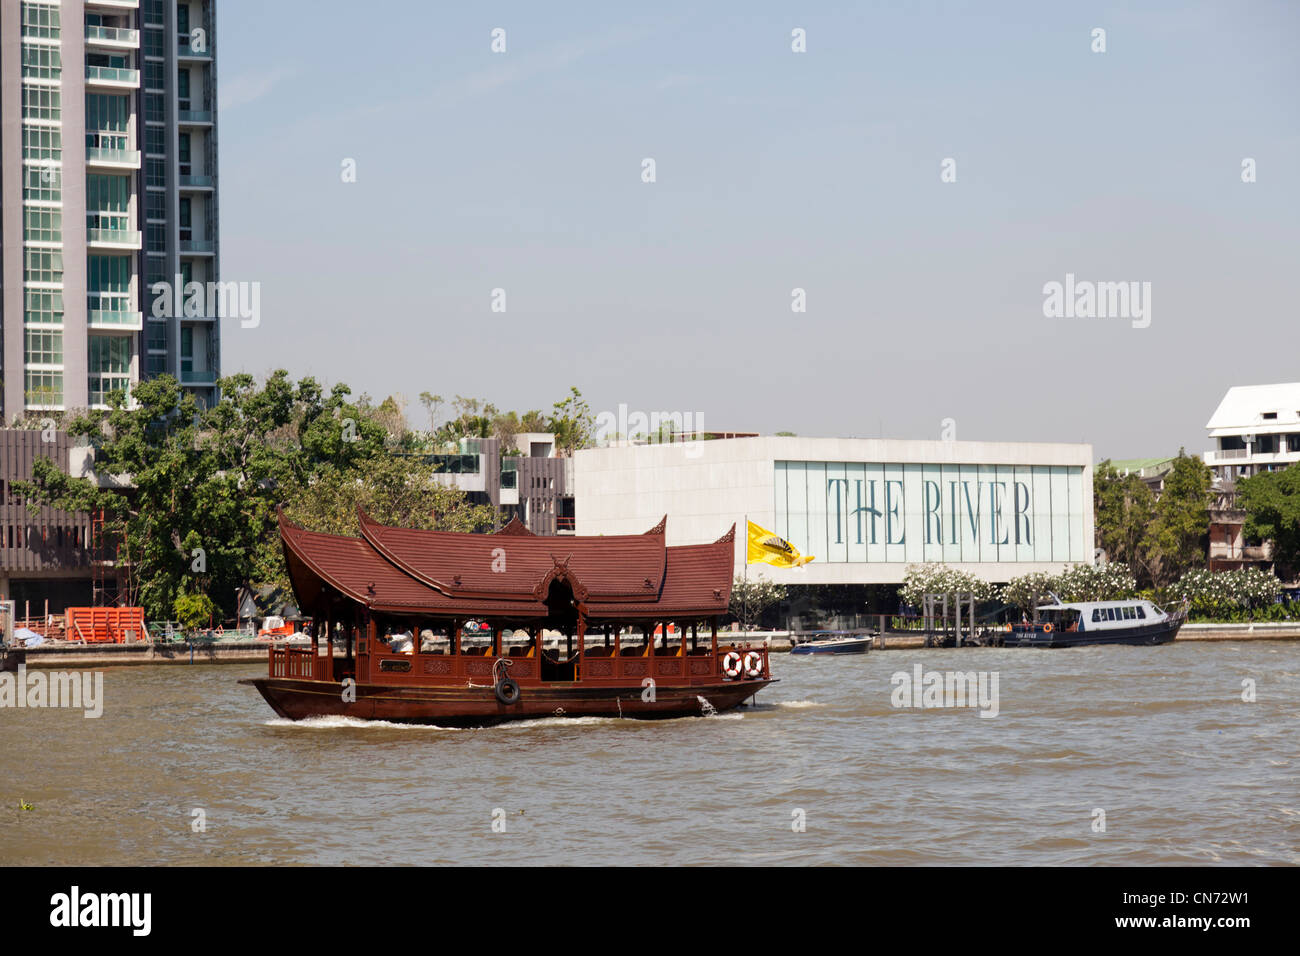 A picturesque hotel shuttle boat on the Chao Phraya river (Bangkok) Pittoresque bateau-navette d'hôtel - Stock Image